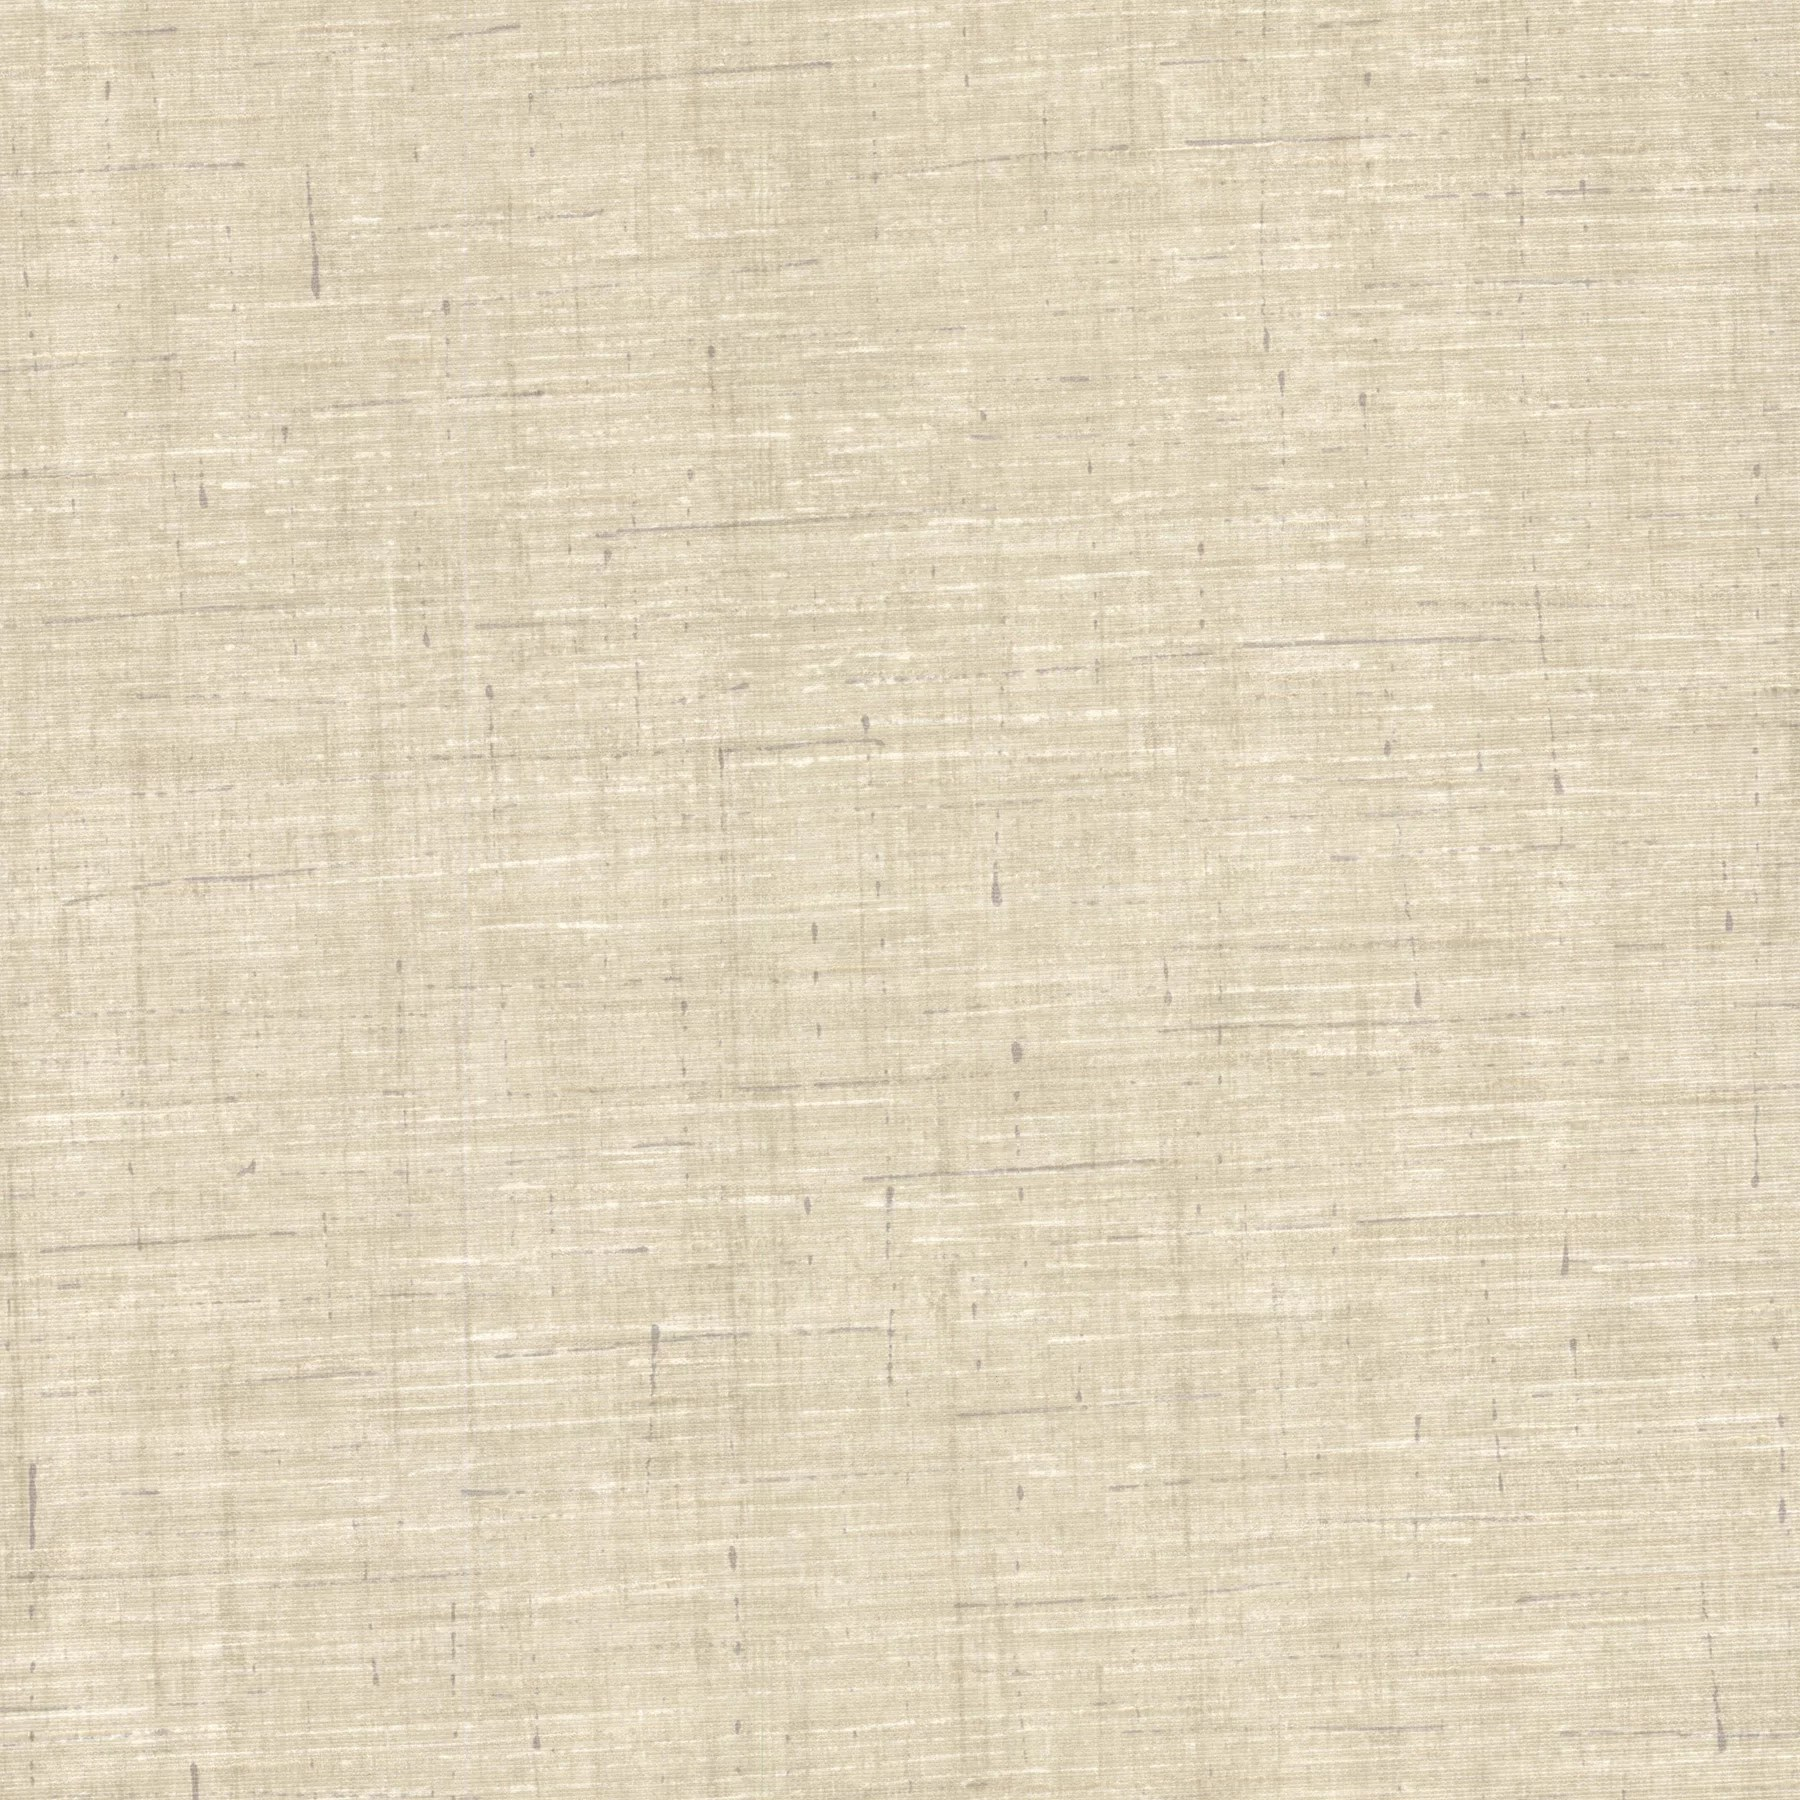 Brewster Home Fashions Cortina III Eanes Scrubbable and Strippable 27 x 27 Solid 3D Embossed Wallpaper  Reviews  Wayfair